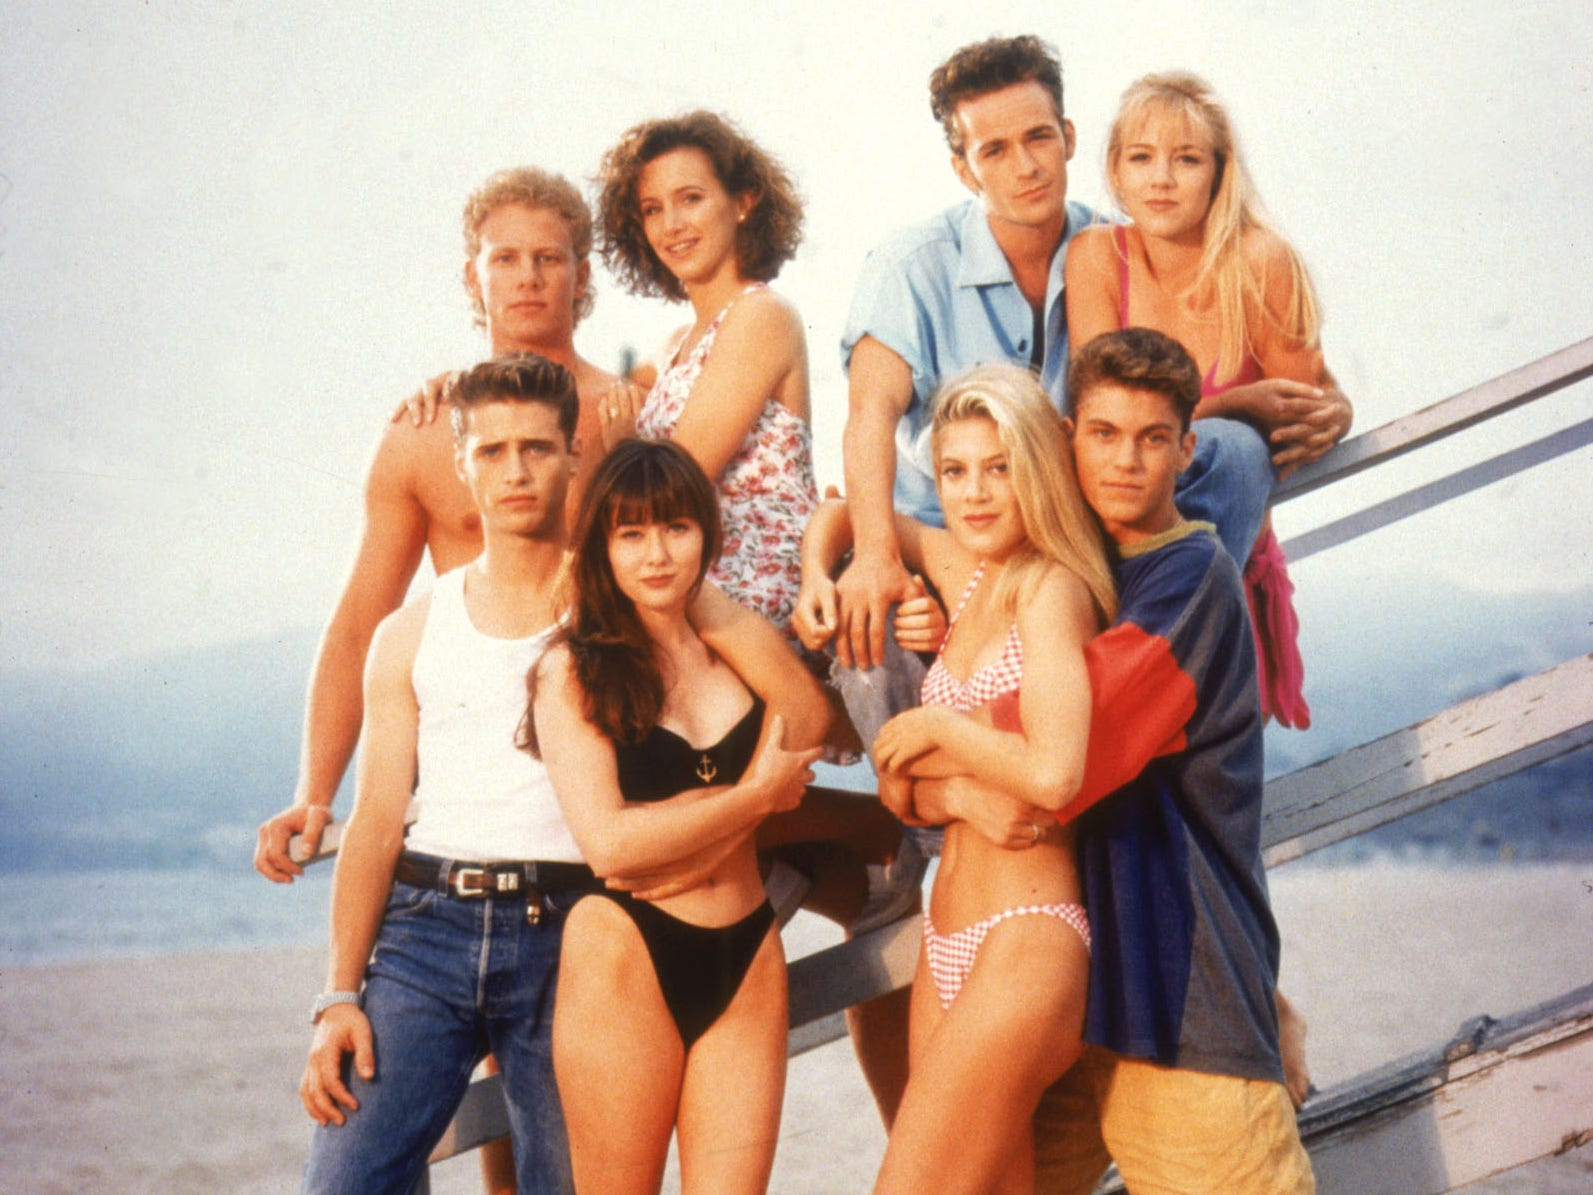 """Nearly two decades after Fox's iconic teen soap """"Beverly Hills 90210"""" left the airwaves, the original cast is reuniting for a reboot in which Fox says they'll play """"heightened versions of themselves."""" Click forward to see what the stars have been up to since leaving West Beverly High."""